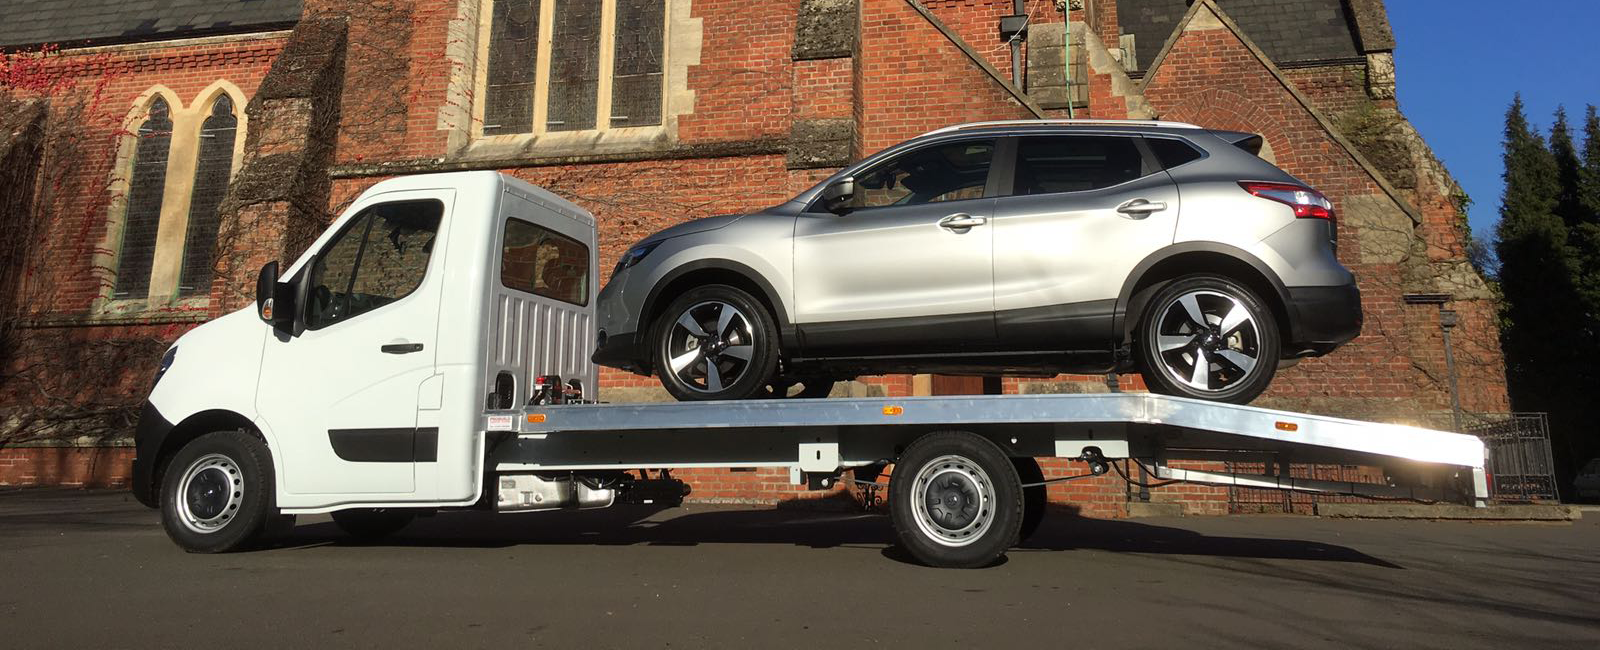 Large Car on Vehicle transporter